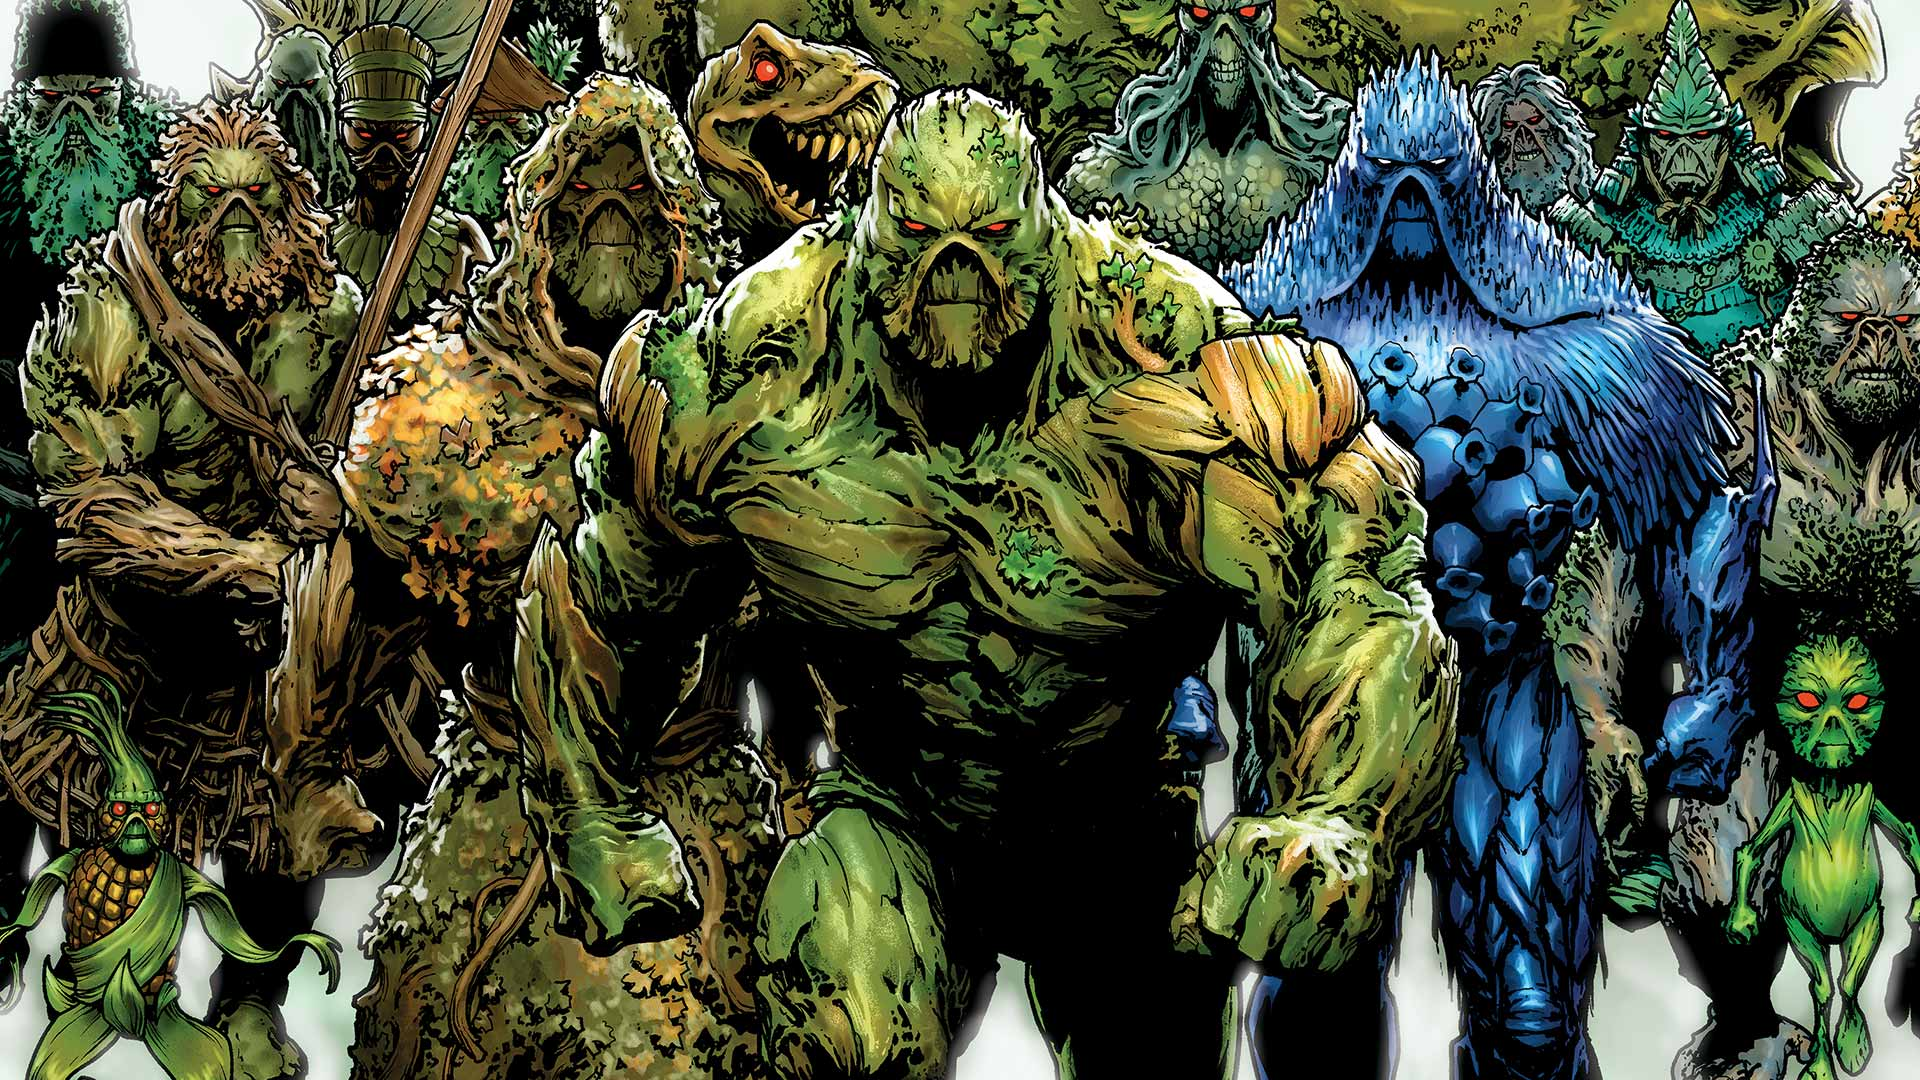 High Resolution Wallpaper | Swamp Thing 1920x1080 px